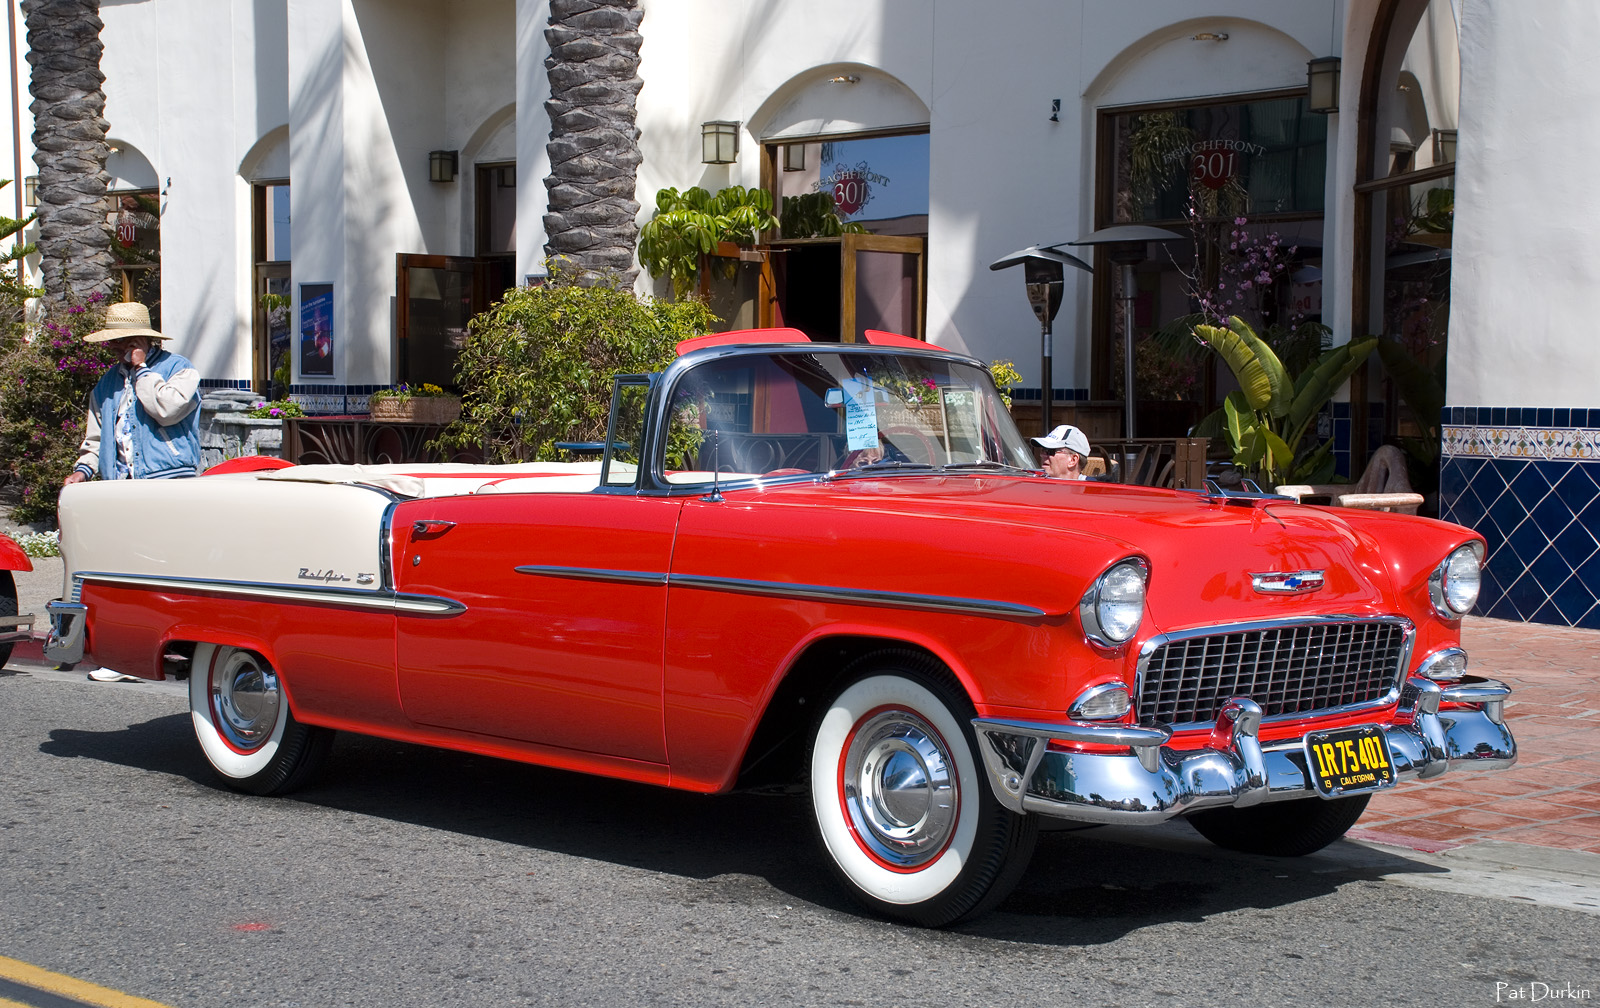 1955 Chevy Bel Air Convertible with top down - Gypsy Red & Polo ...